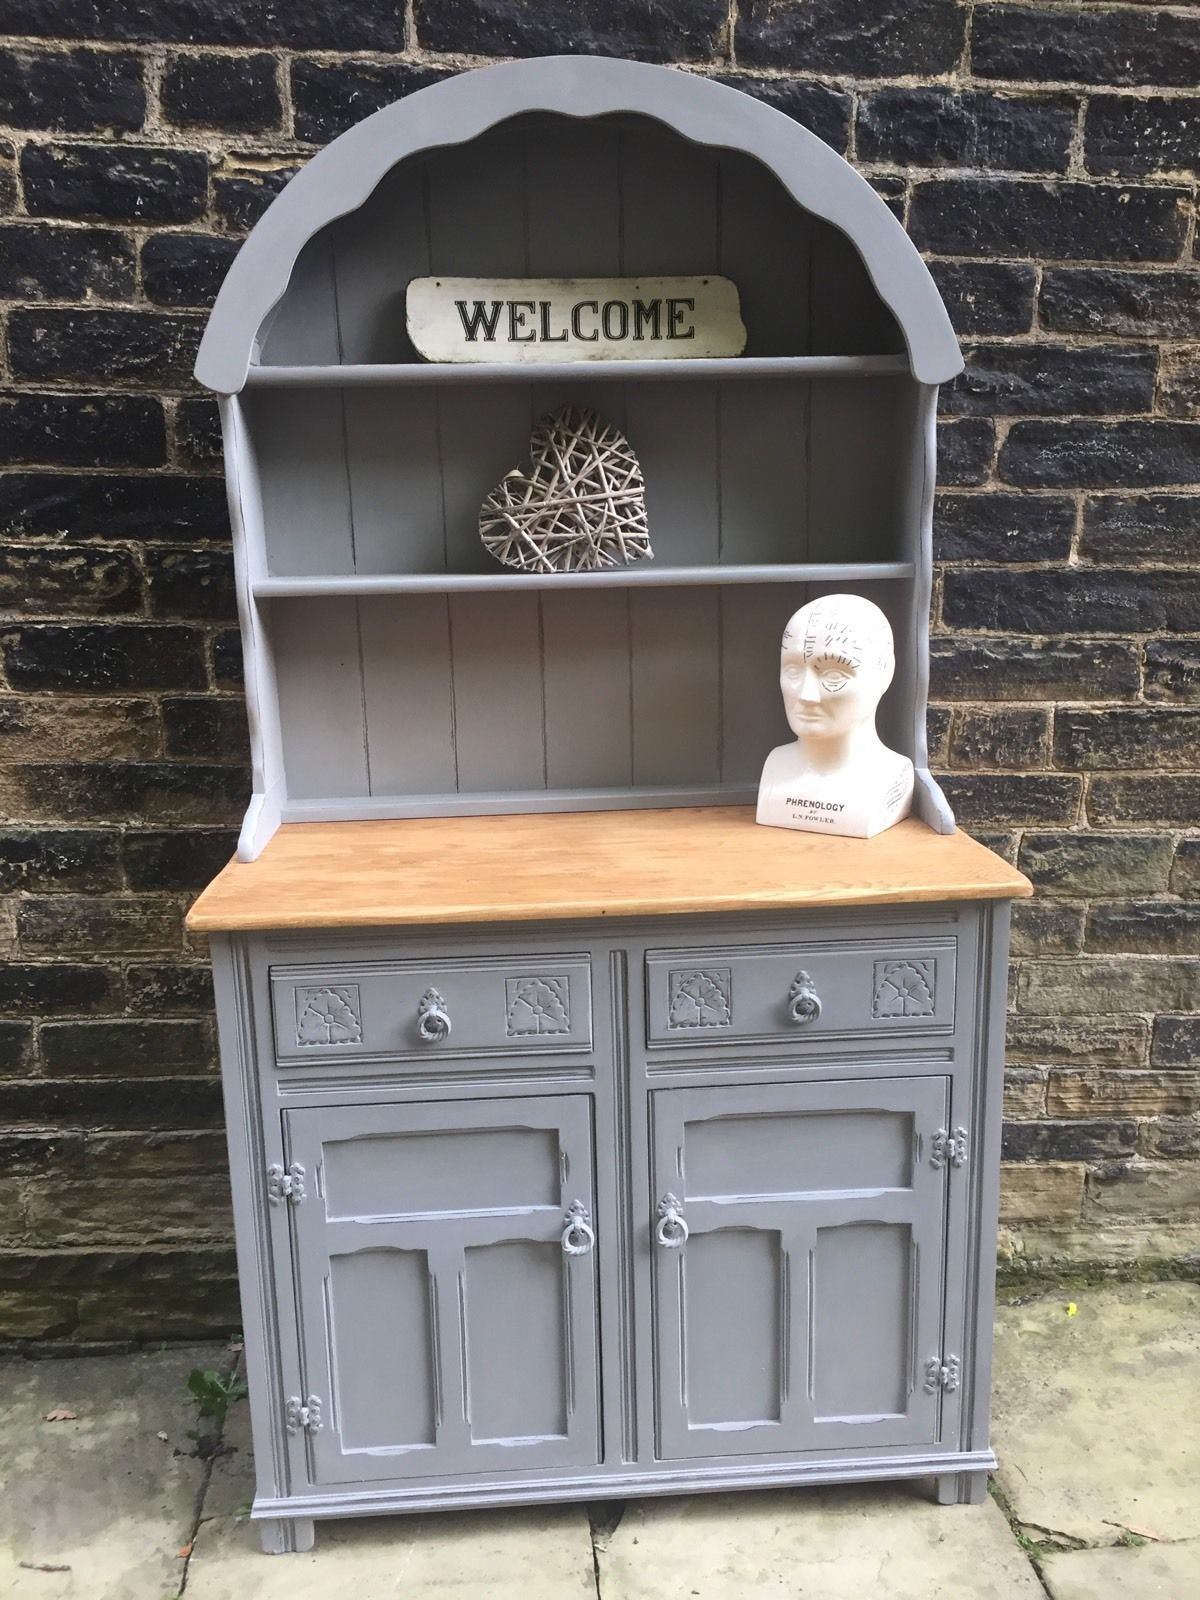 Painting furniture shabby chic - Rustic Industrial Shabby Chic Painted Welsh Dutch Dresser Annie Sloan Paris Grey